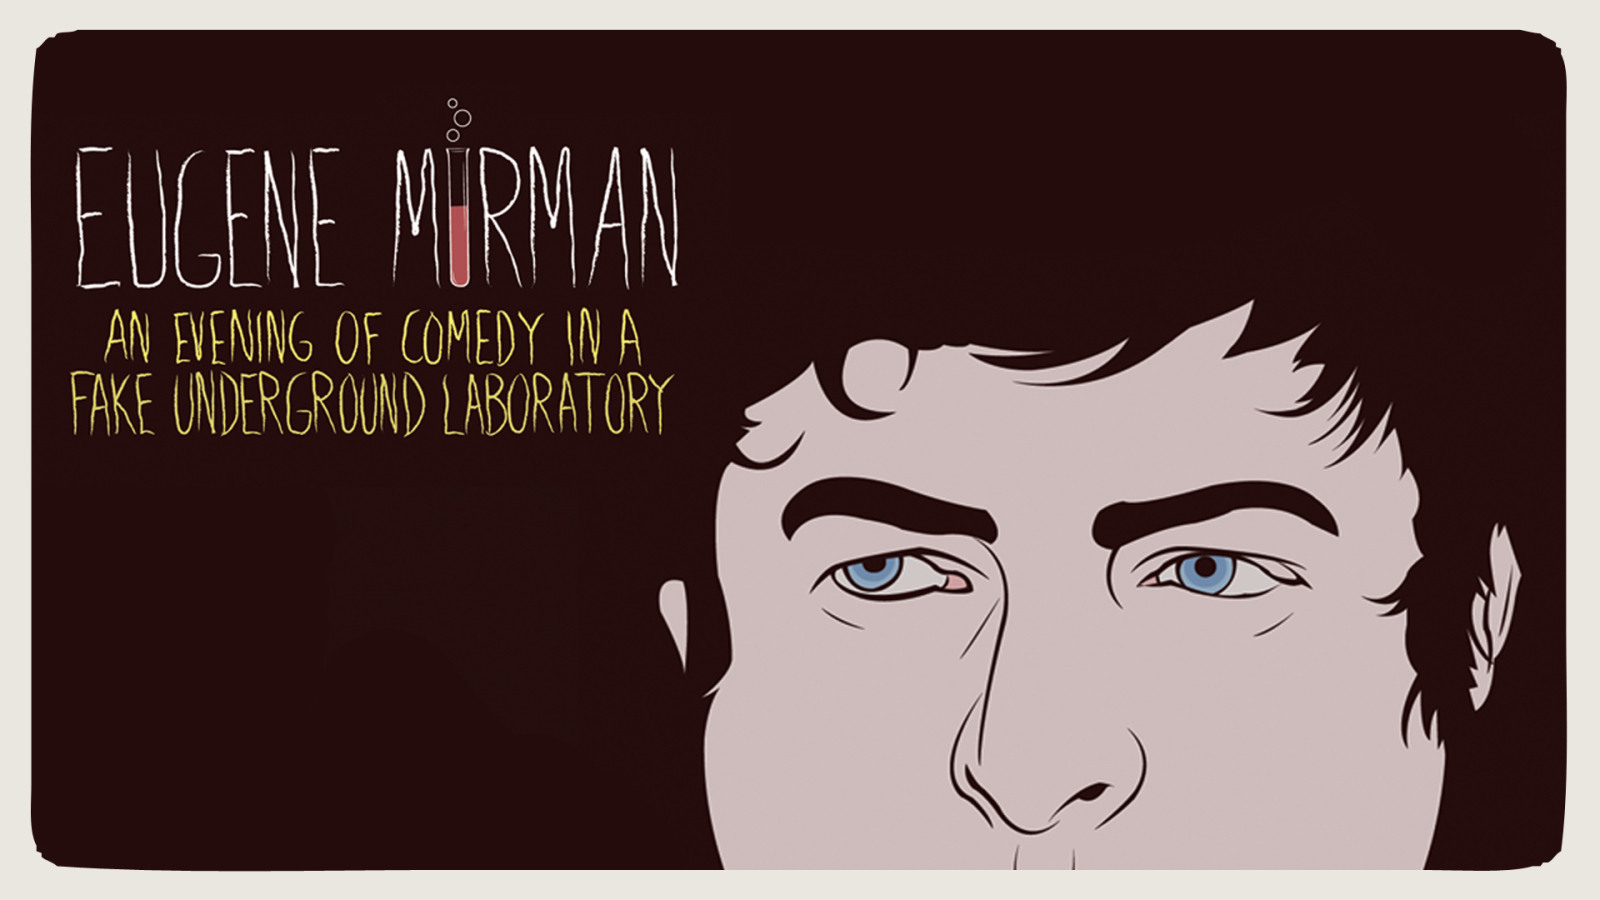 EUGENE MIRMAN - AN EVENING OF COMEDY IN A FAKE UNDERGROUND LABORATORY